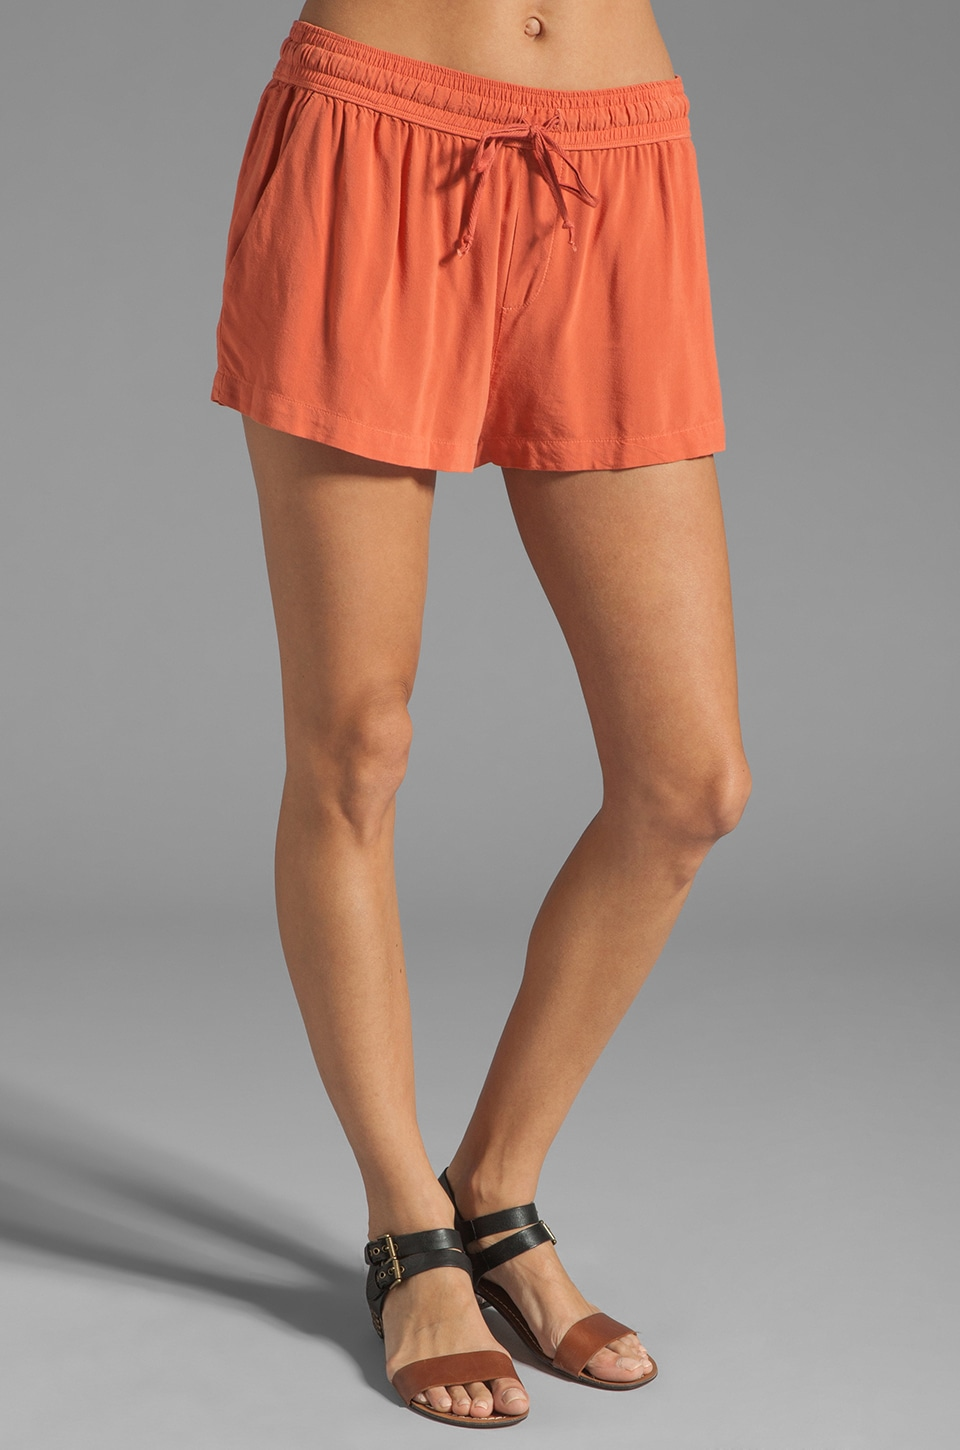 Enza Costa Challis Short in Muted Coral